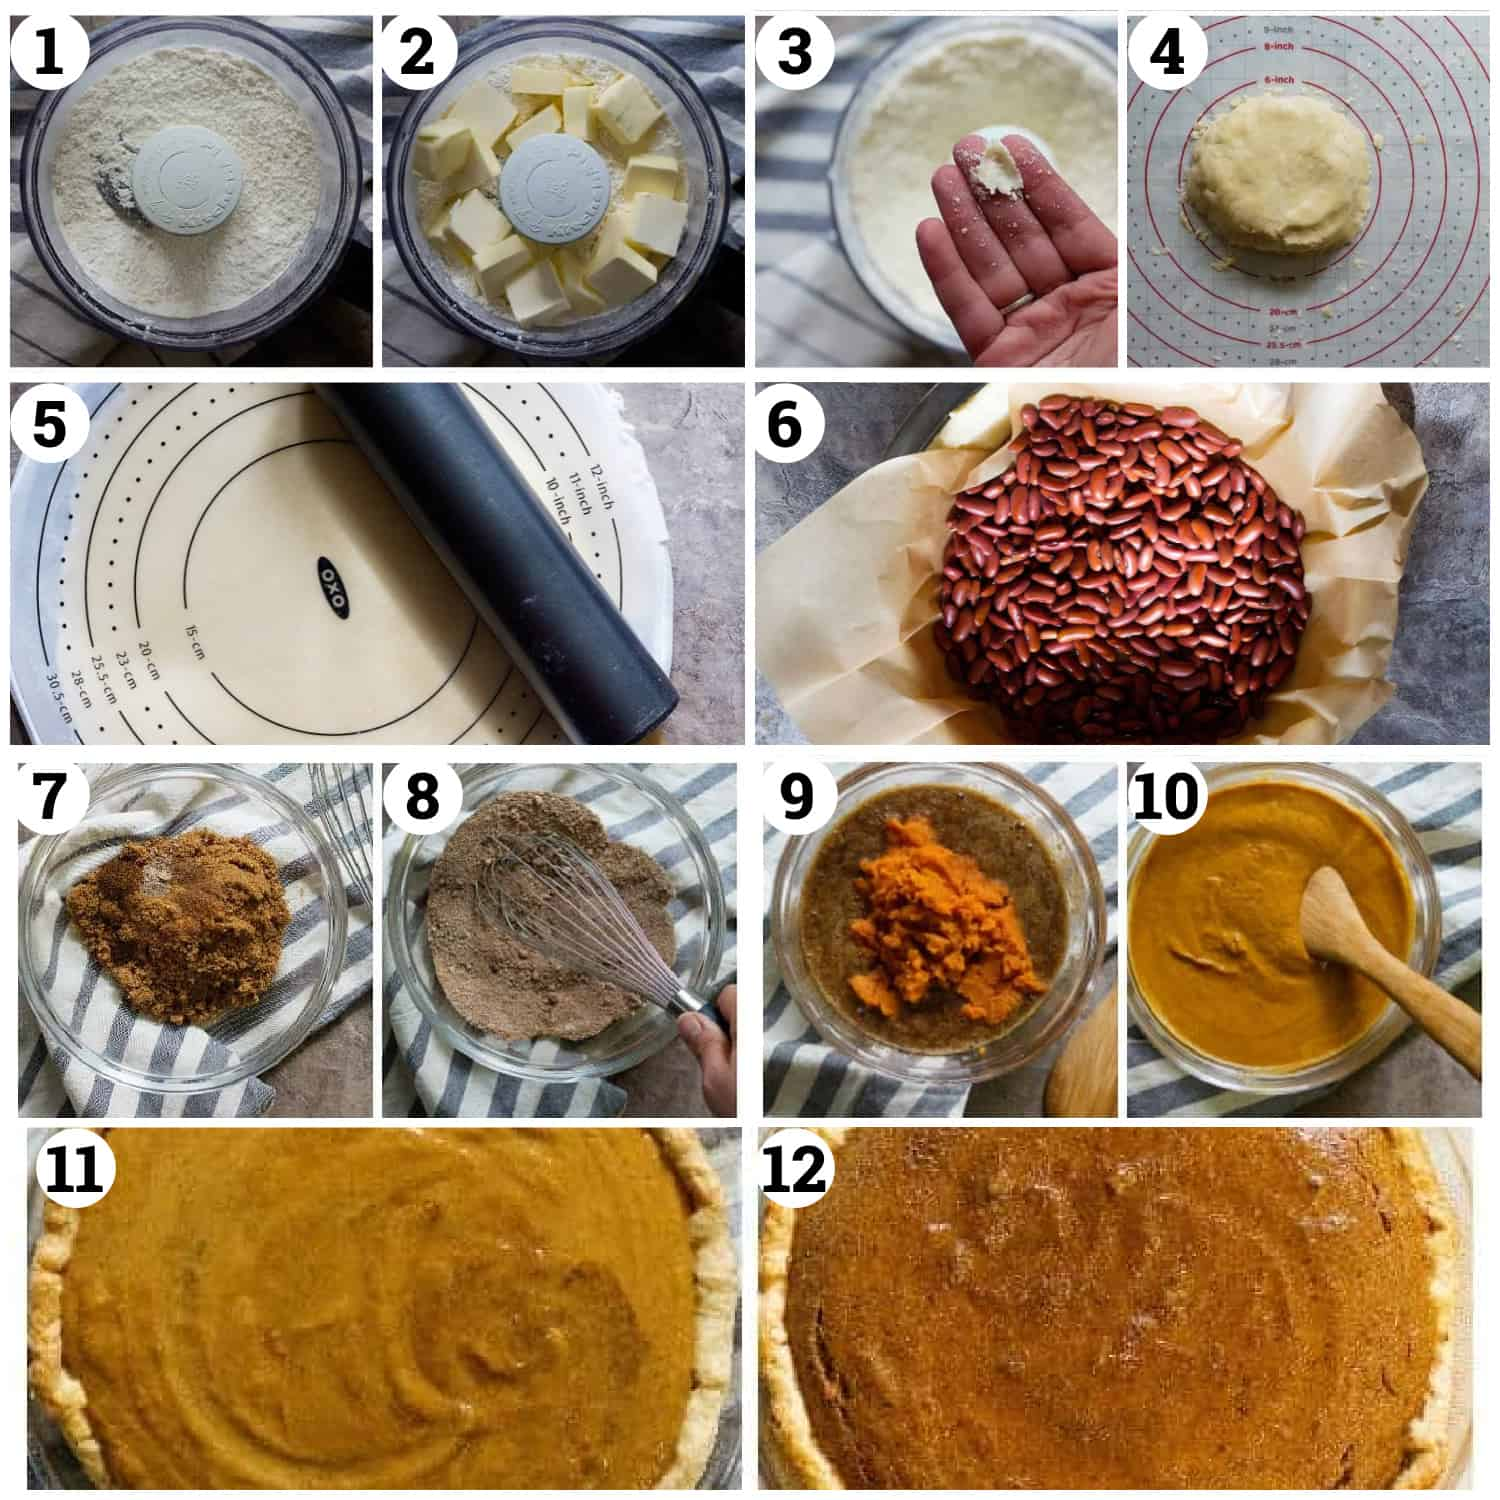 make the pie crust or use store bought, make the filling and bake.